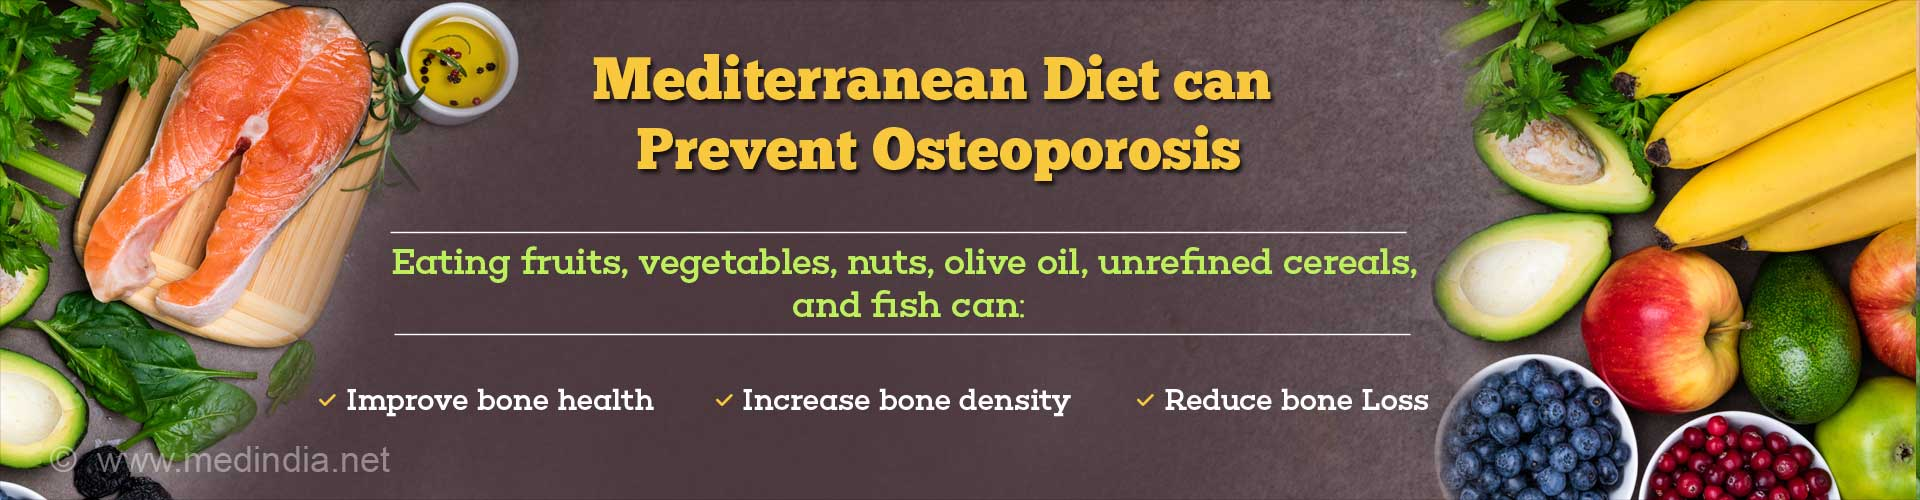 Mediterranean Diet Can Prevent Bone Loss in Osteoporosis Patients